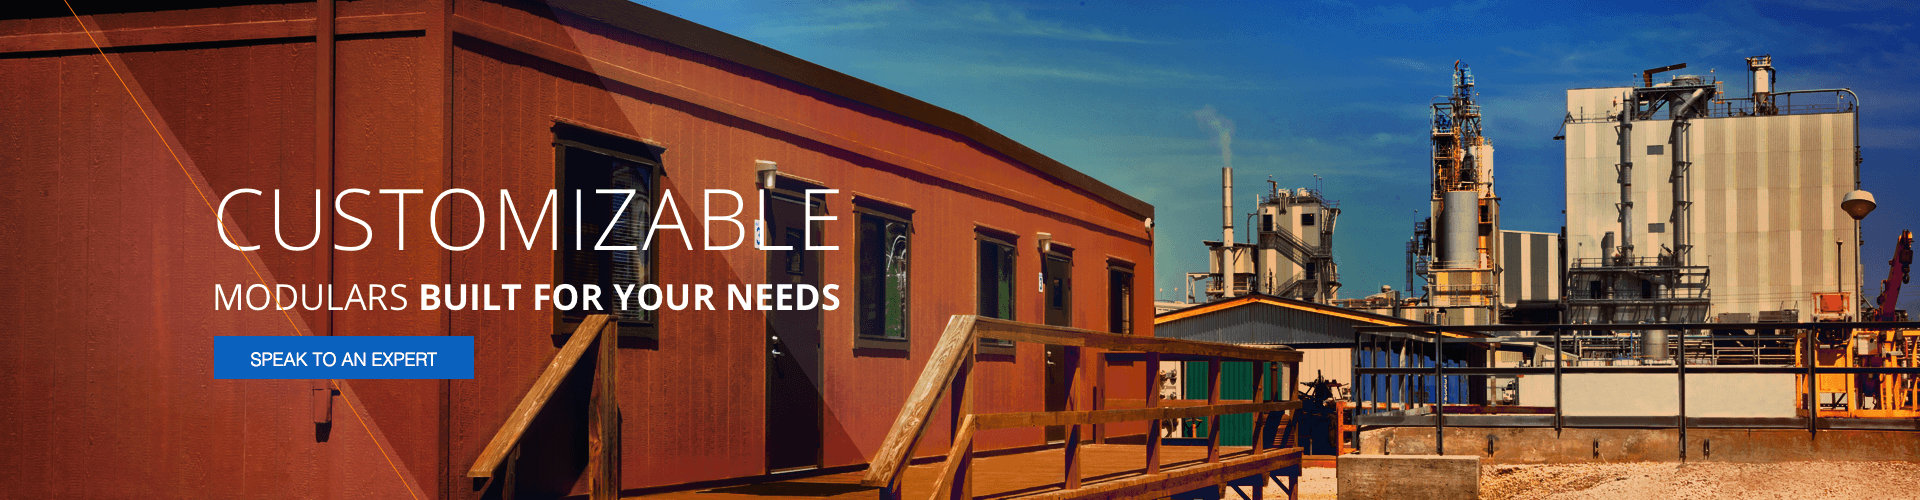 Mobile-Modular-Customizable-Building